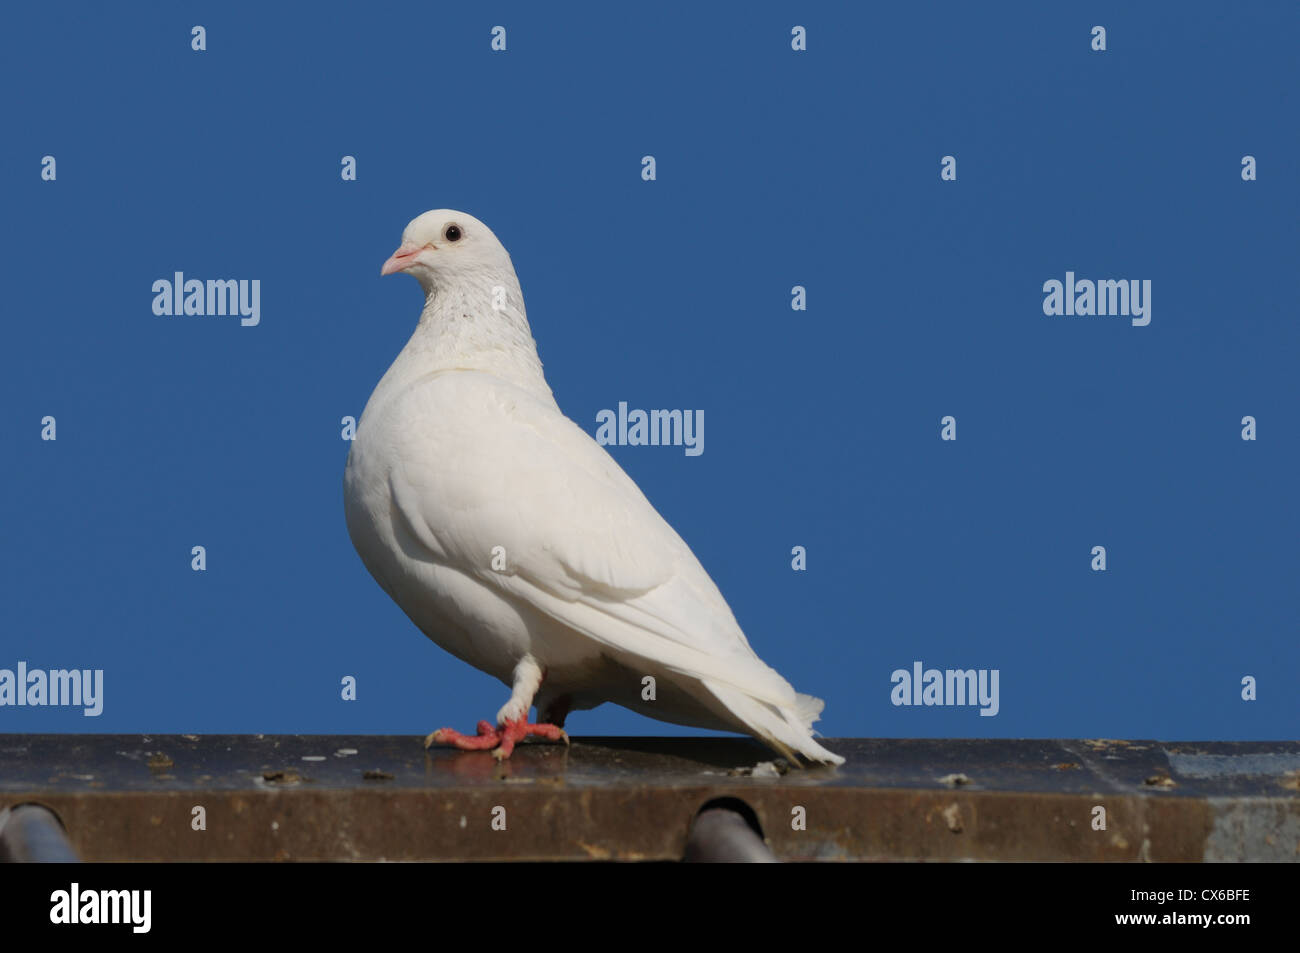 white dove - Stock Image